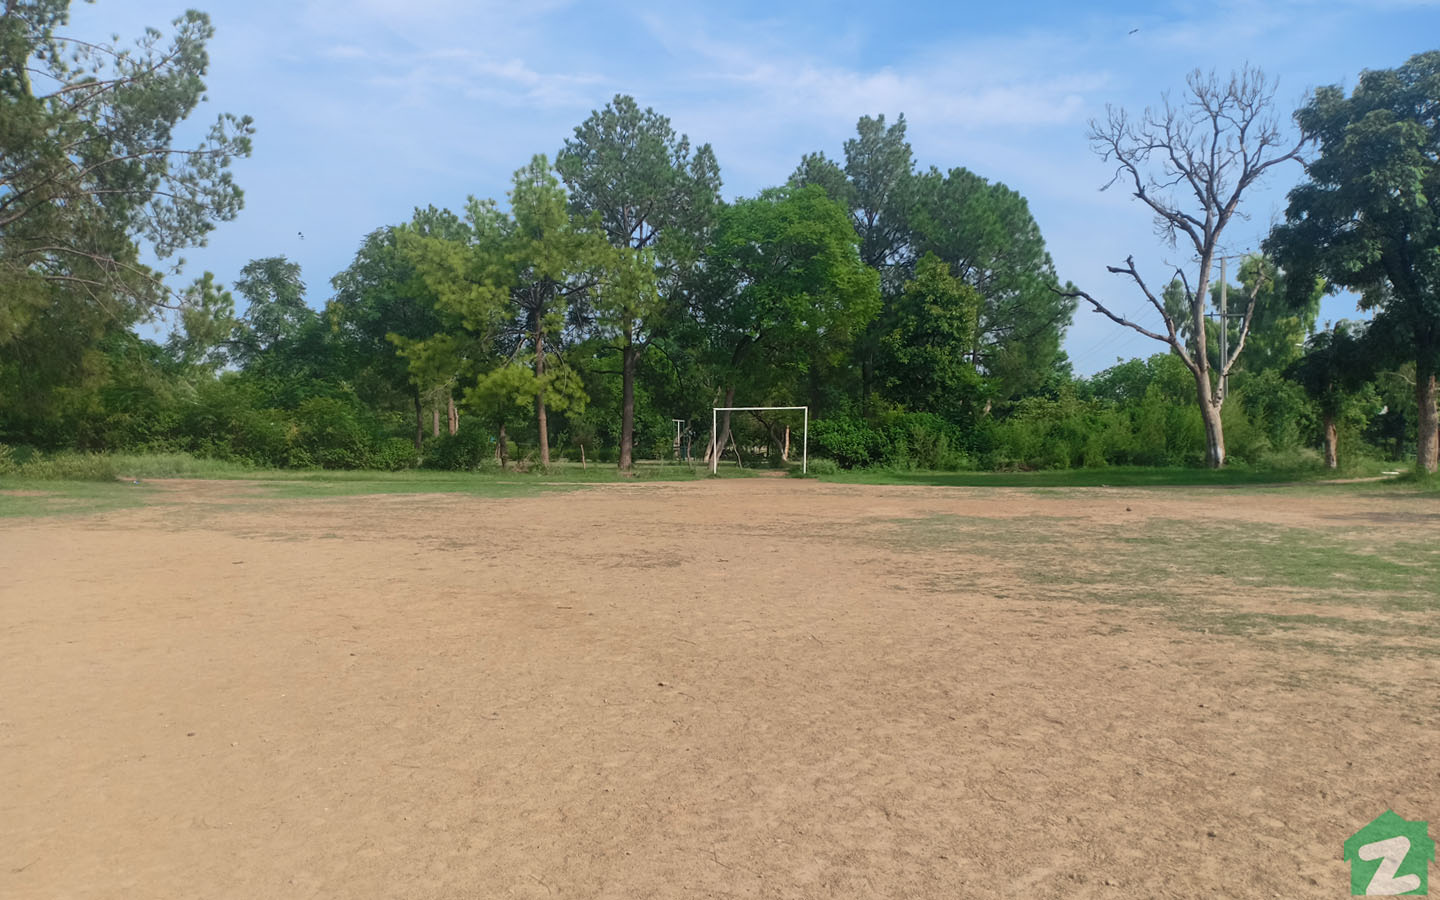 Football ground is also available for kids in the society